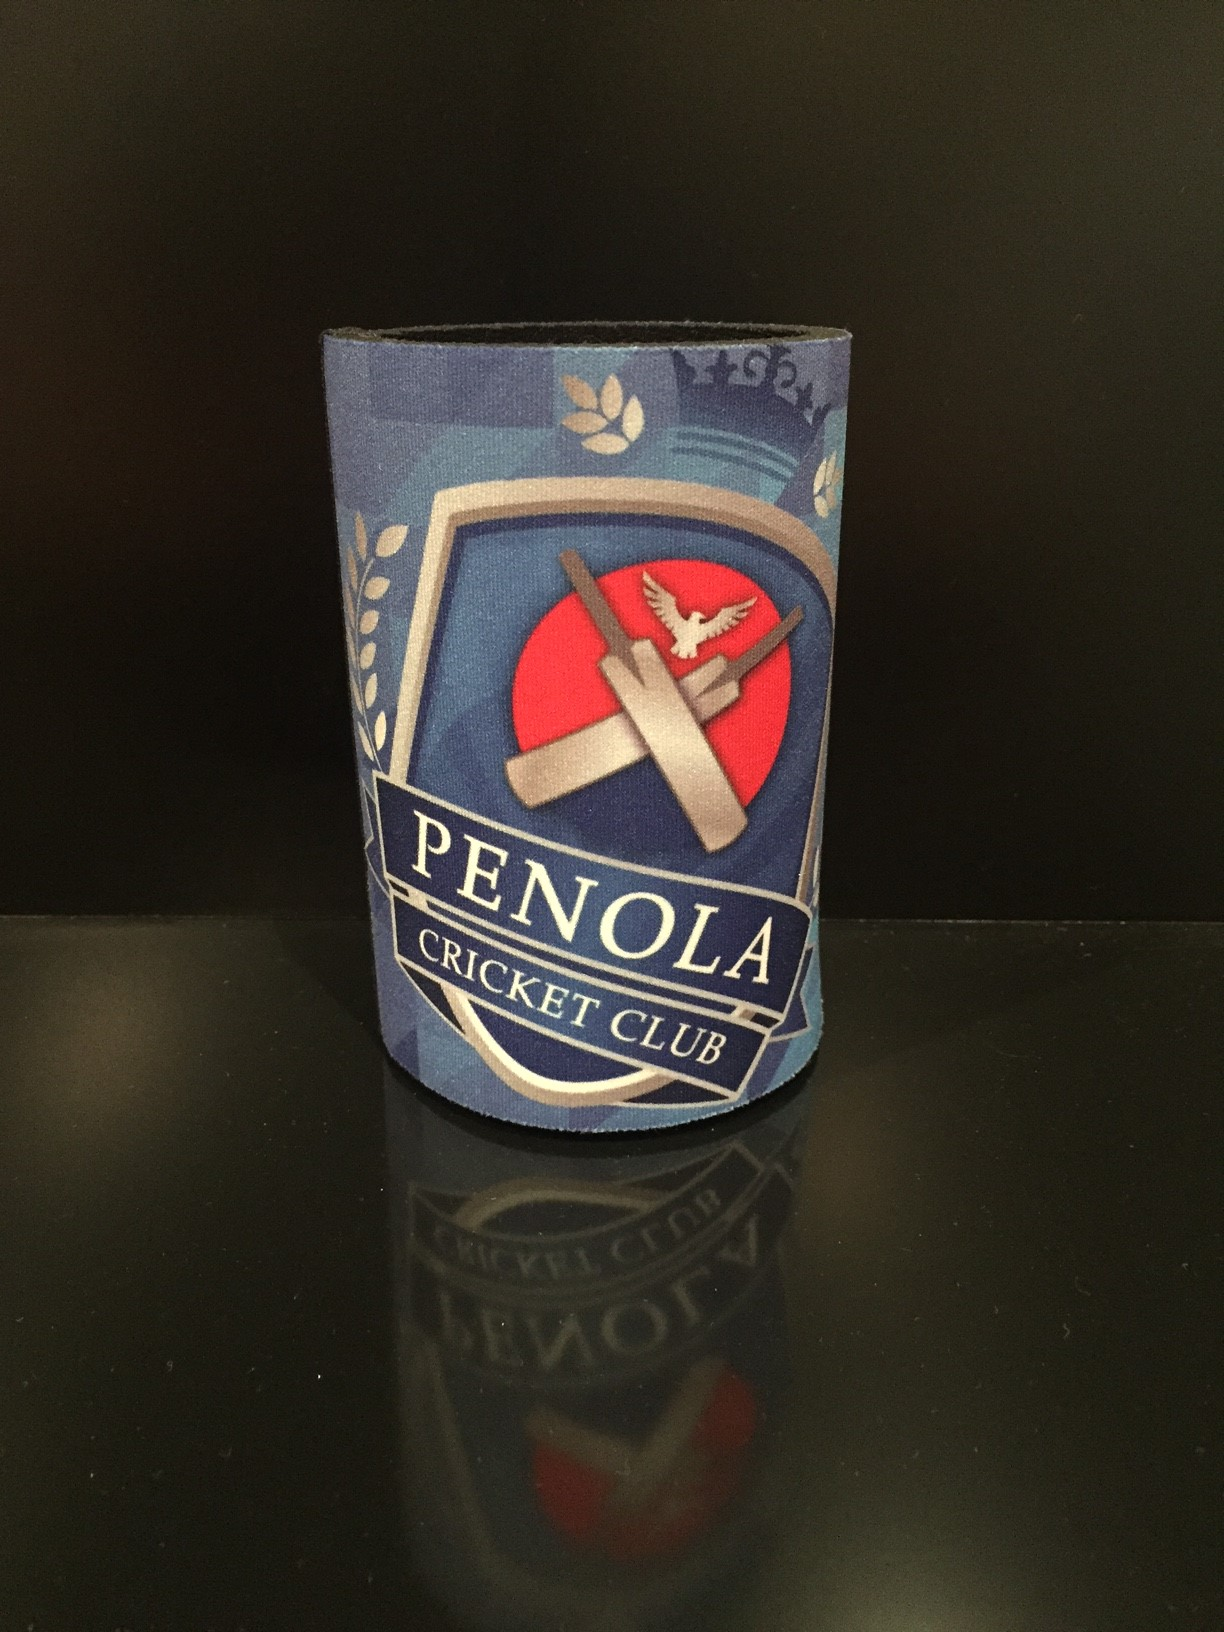 Penola Cricket Club